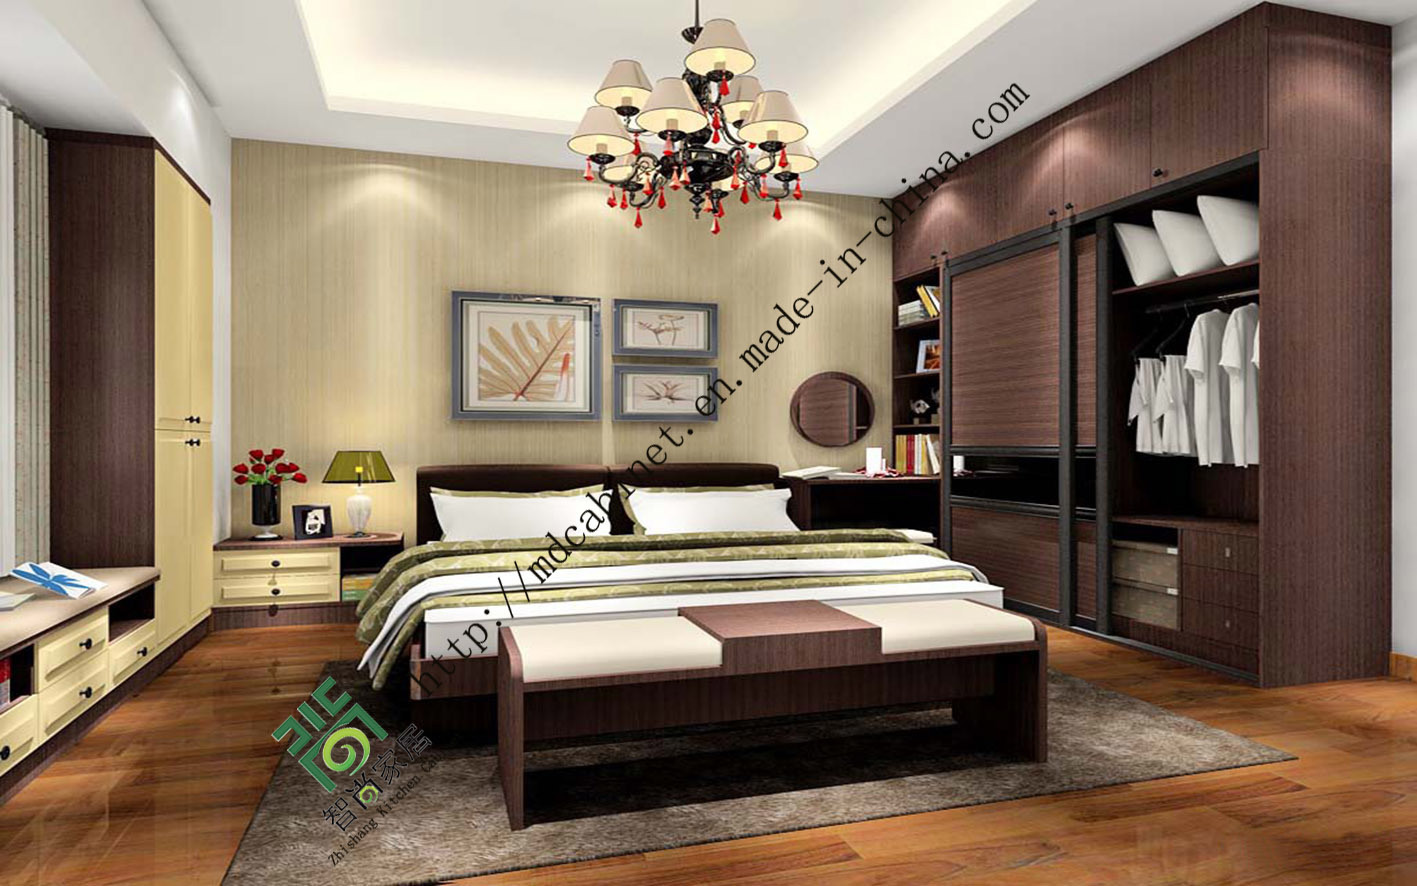 2017 New Style Bedroom Furniture  Naturalistic style 03. China 2017 New Style Bedroom Furniture  Naturalistic style 03